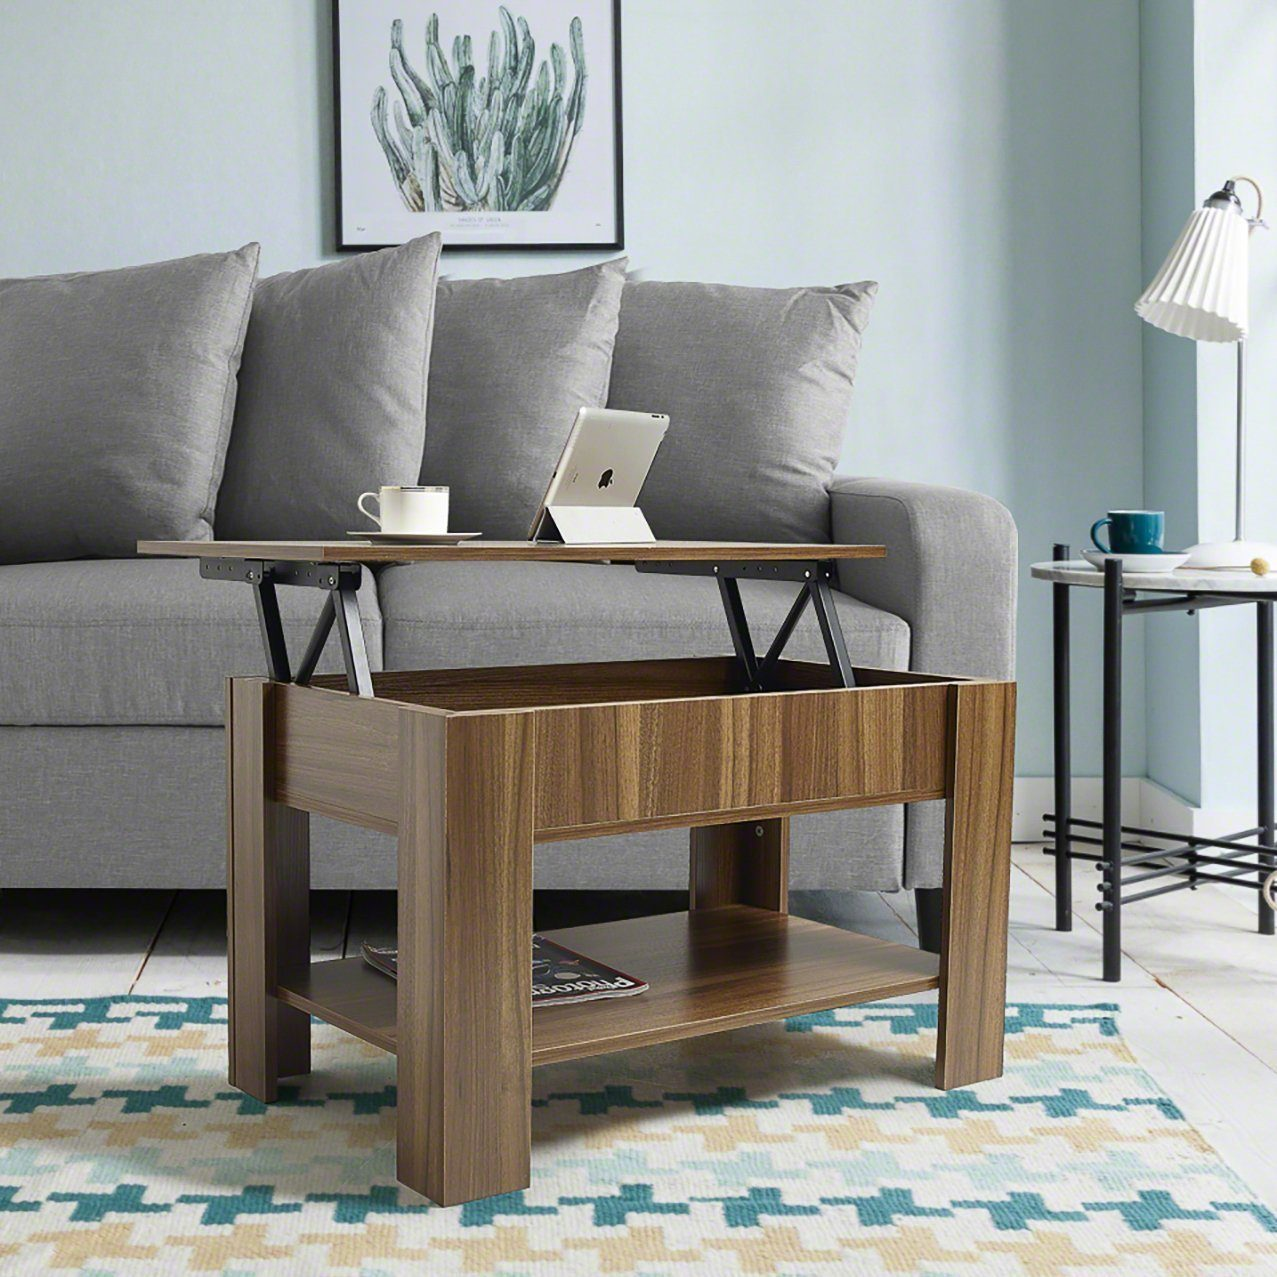 Lift up Top Coffee Table with Storage & Shelf - Walnut - Laura James